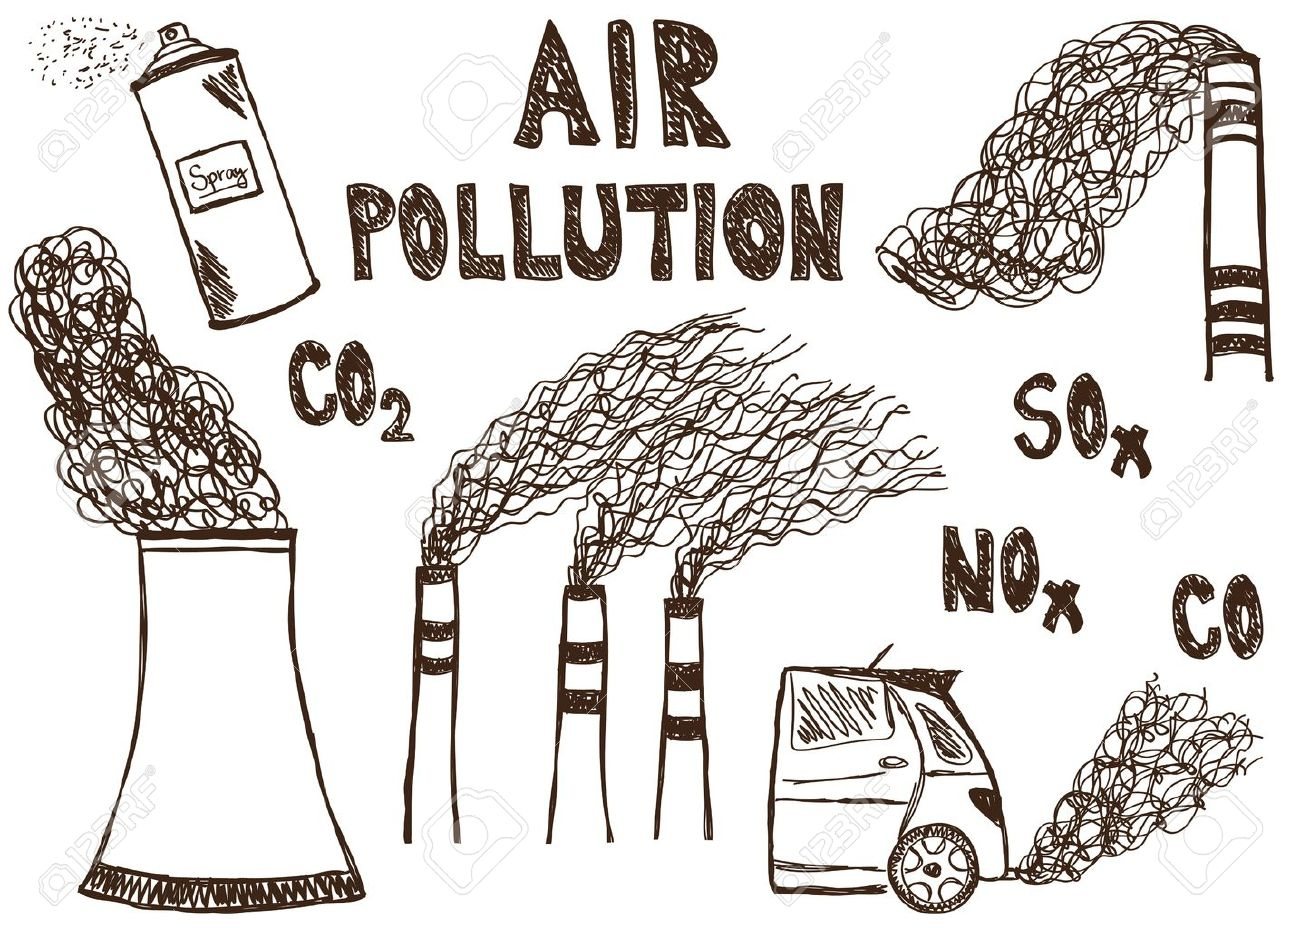 Illustration of air pollution doodle drawings on white background stock vector 17526822